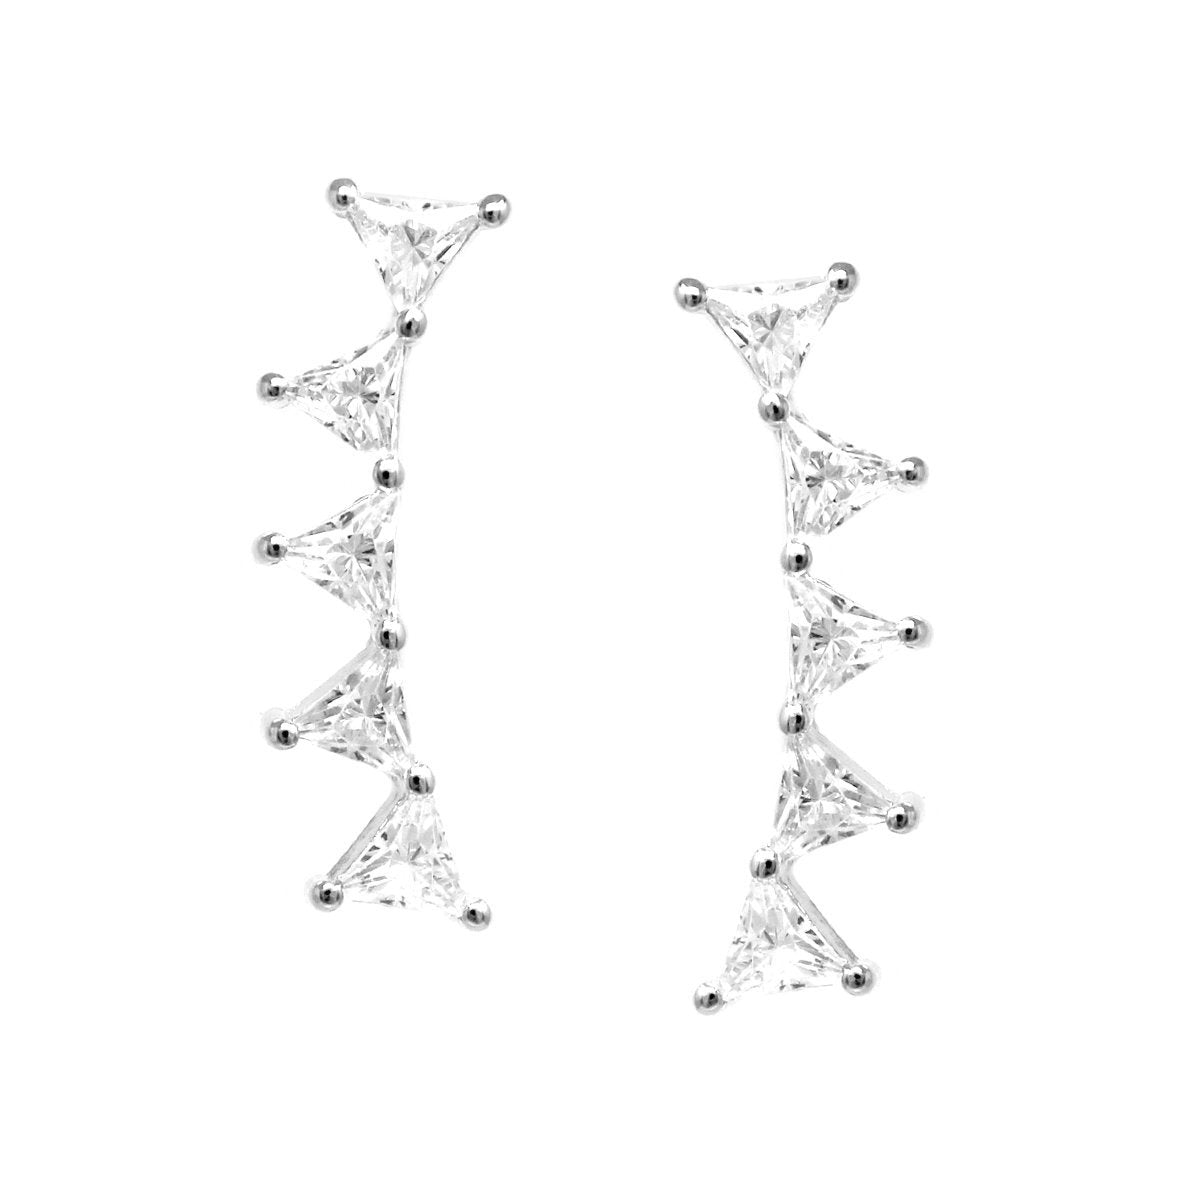 BITZ TRIANGLE SHAPE CUBIC ZIRCONIA PAVE EAR CRAWLERS EARRINGS TWO COLOR OPTIONS - GOLD OR SILVER